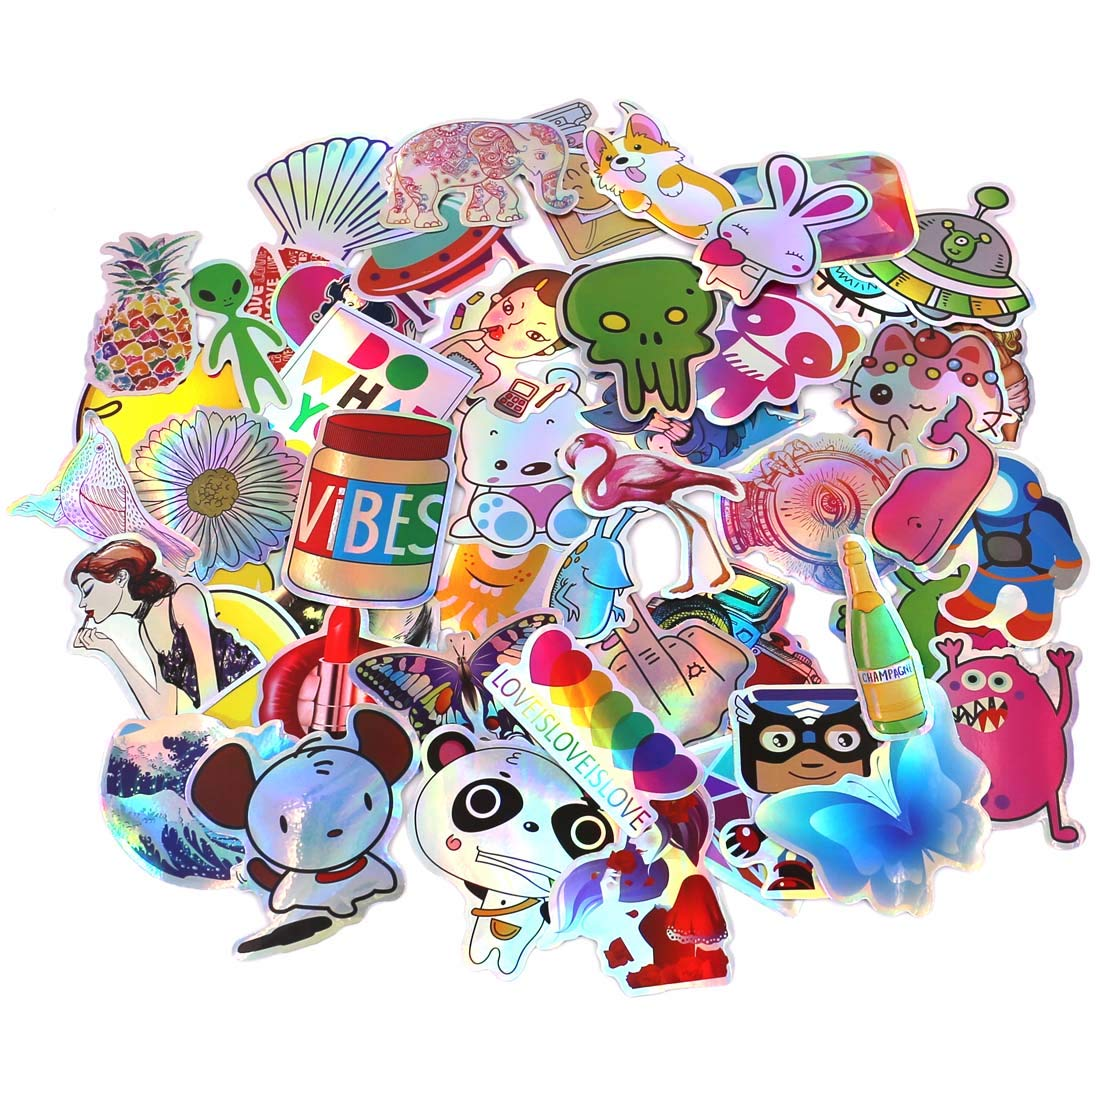 LhomeLife Graffiti Stickers Decals Pack of 50 pcs Car Stickers Motorcycle Bicycle Skateboard Luggage Phone Pad Laptop Stickers and Bumper Patches Decals Waterproof (Type 2)